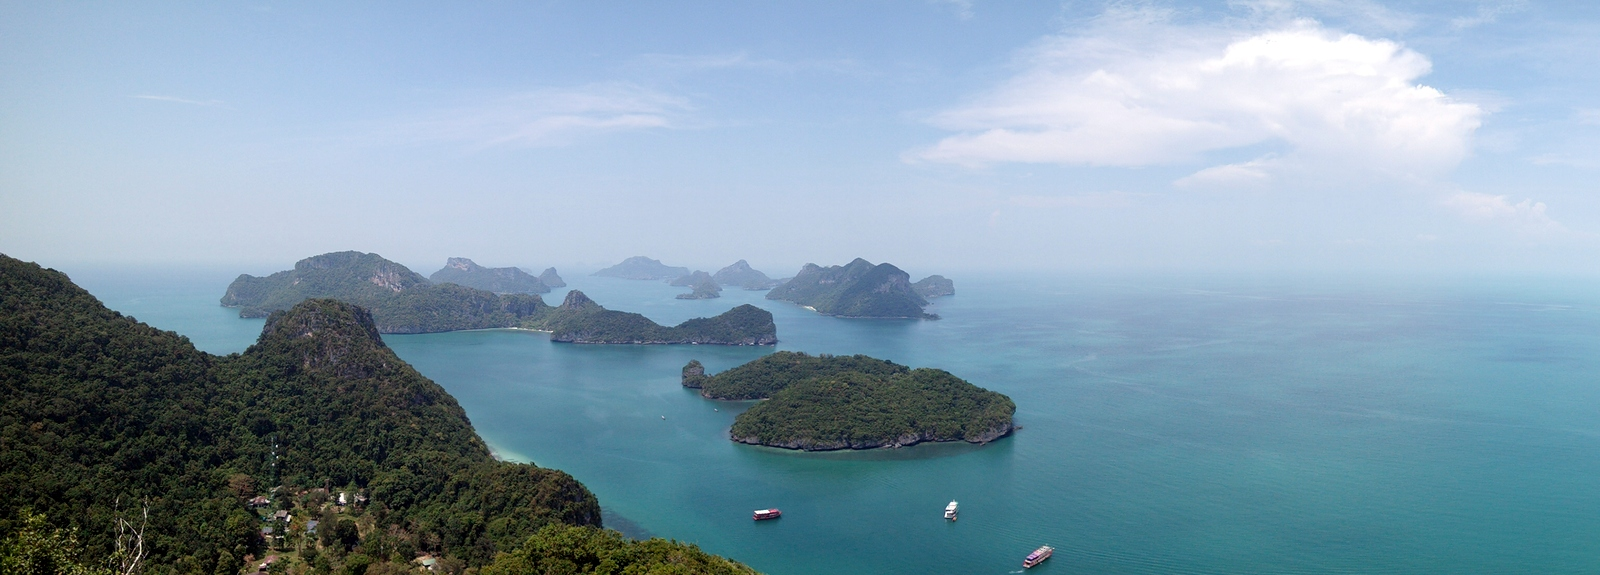 Move Our World Blog Voyage Top 3 Asie Les panoramas de dingue (5) Thailand National Park